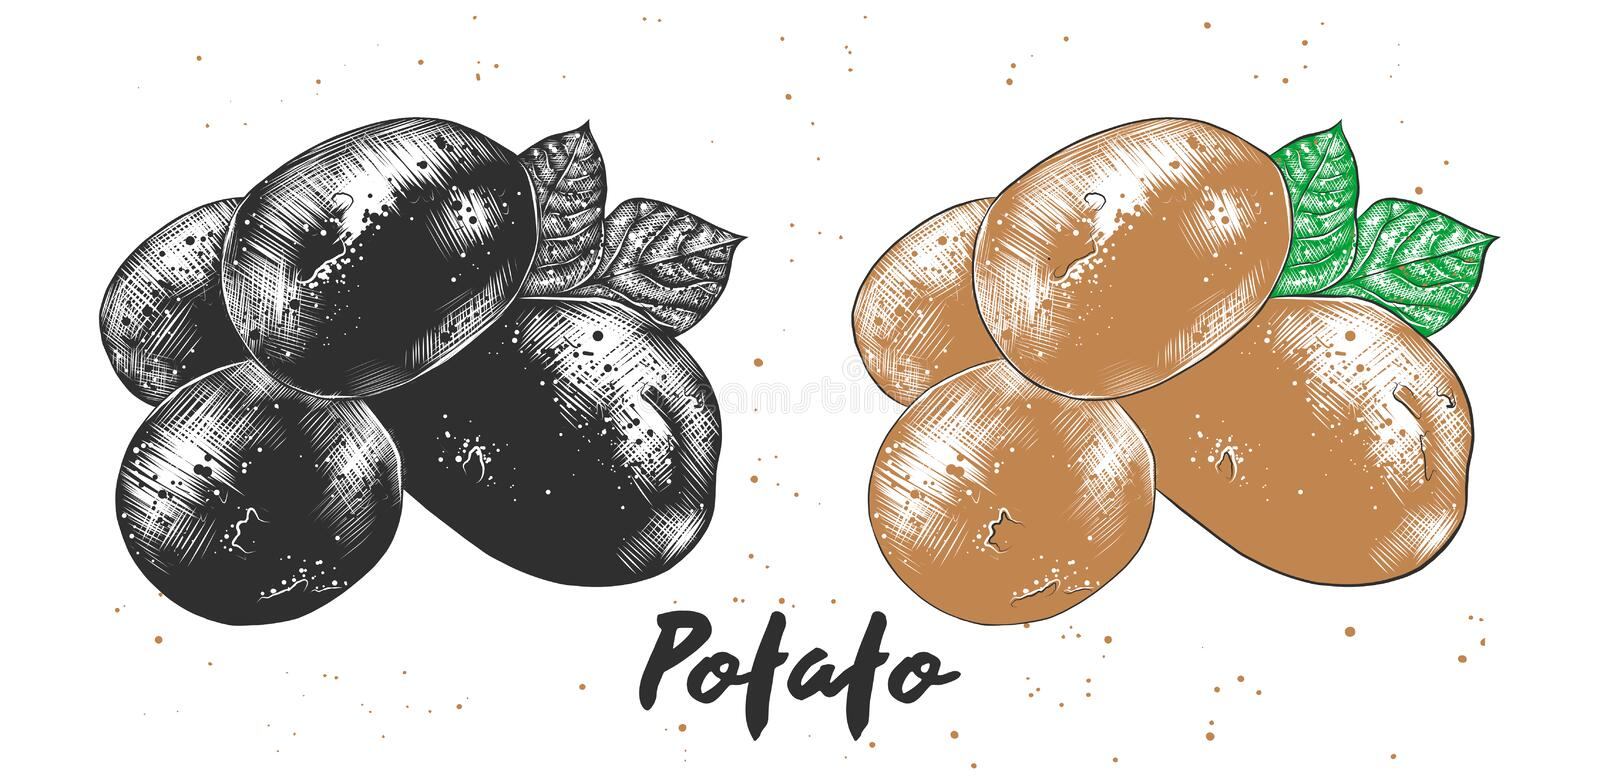 Hand drawn sketch of potato in monochrome and colorful. Detailed vegetarian food drawing. stock illustration